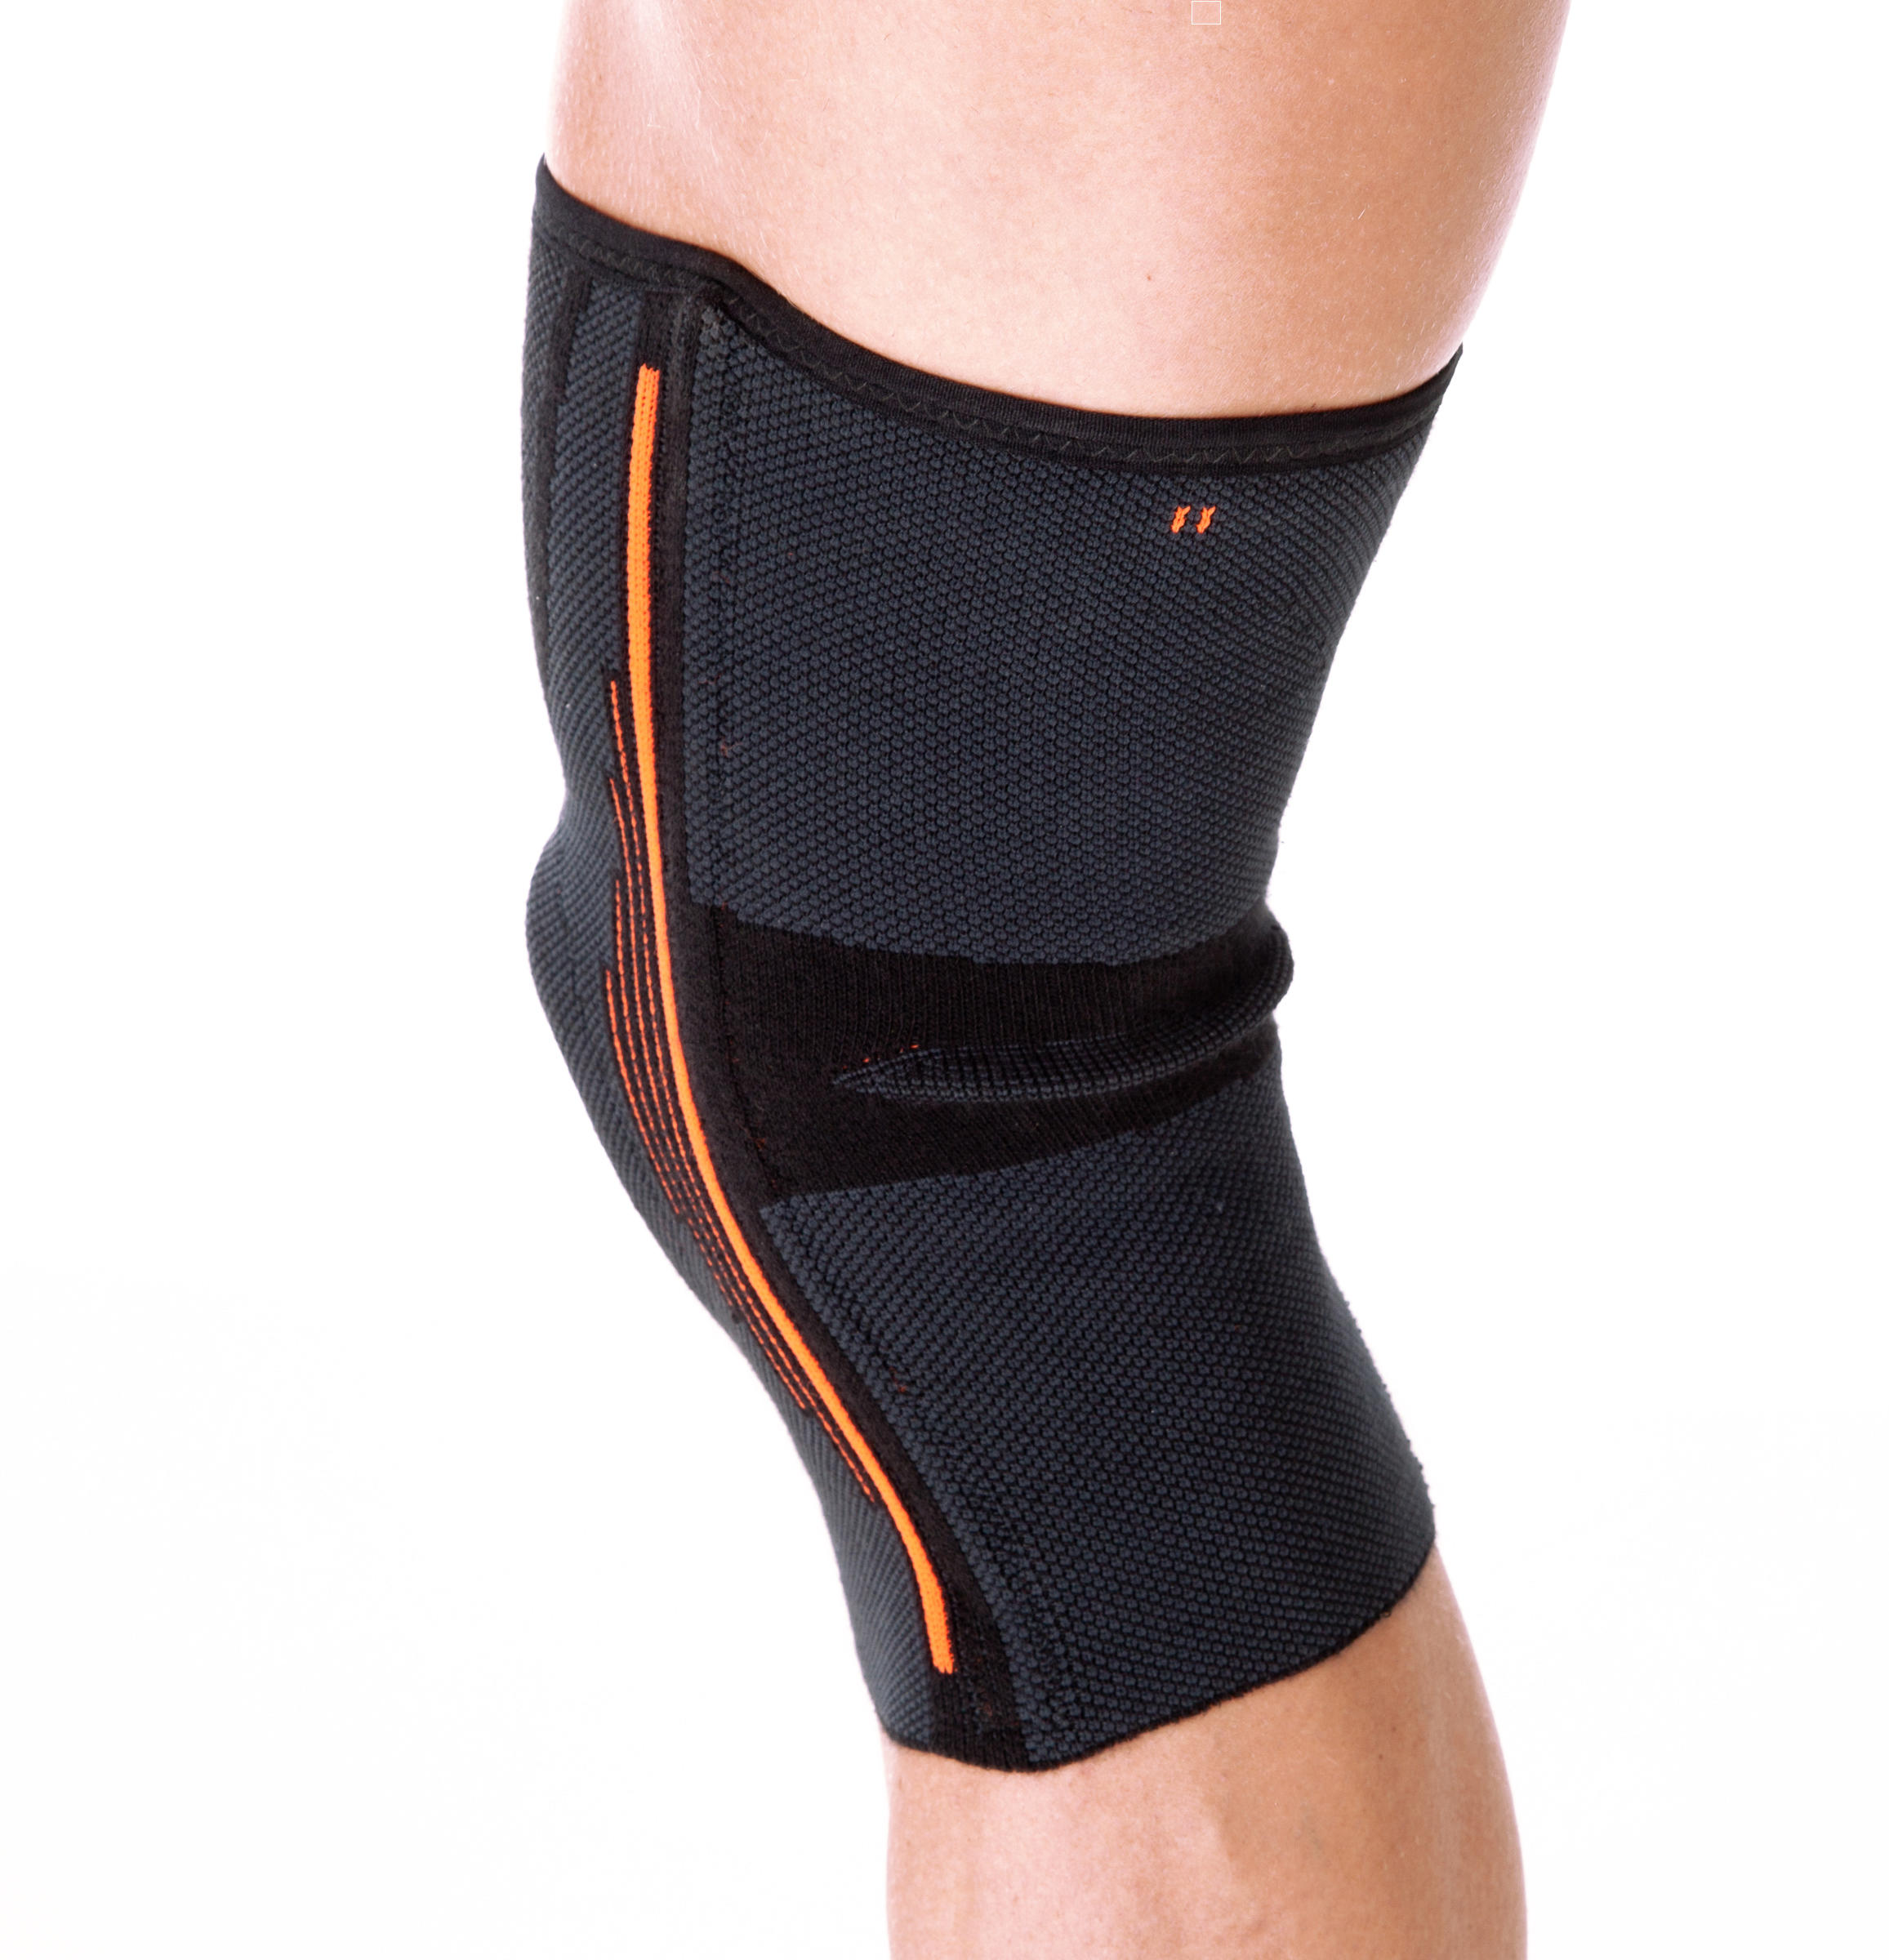 Soft 500 Right/Left Men's/Women's Knee Ligament Support - Black